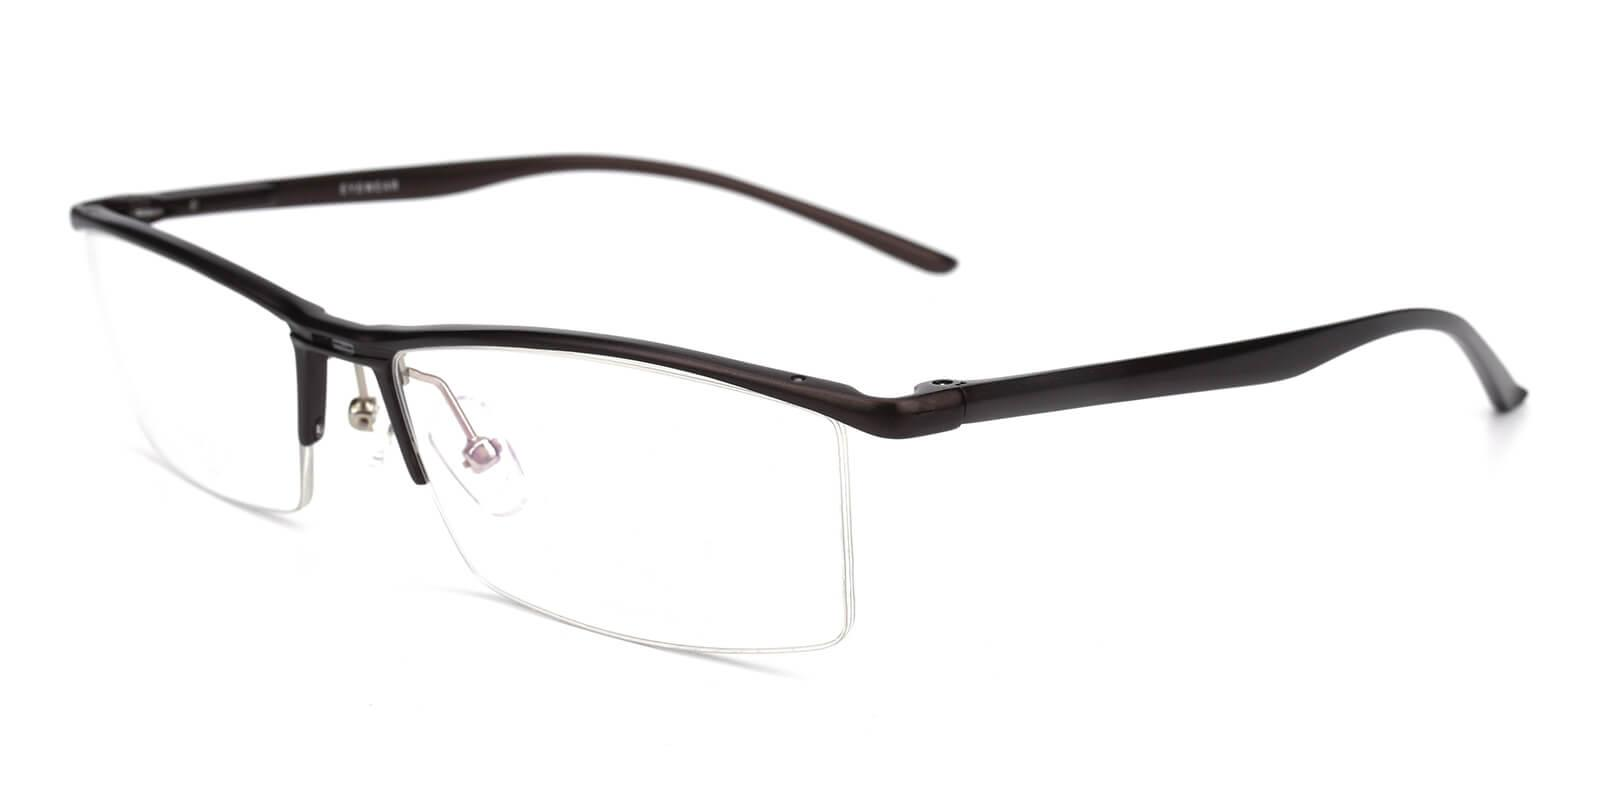 Metalla-Brown-Rectangle-Metal-Eyeglasses-detail